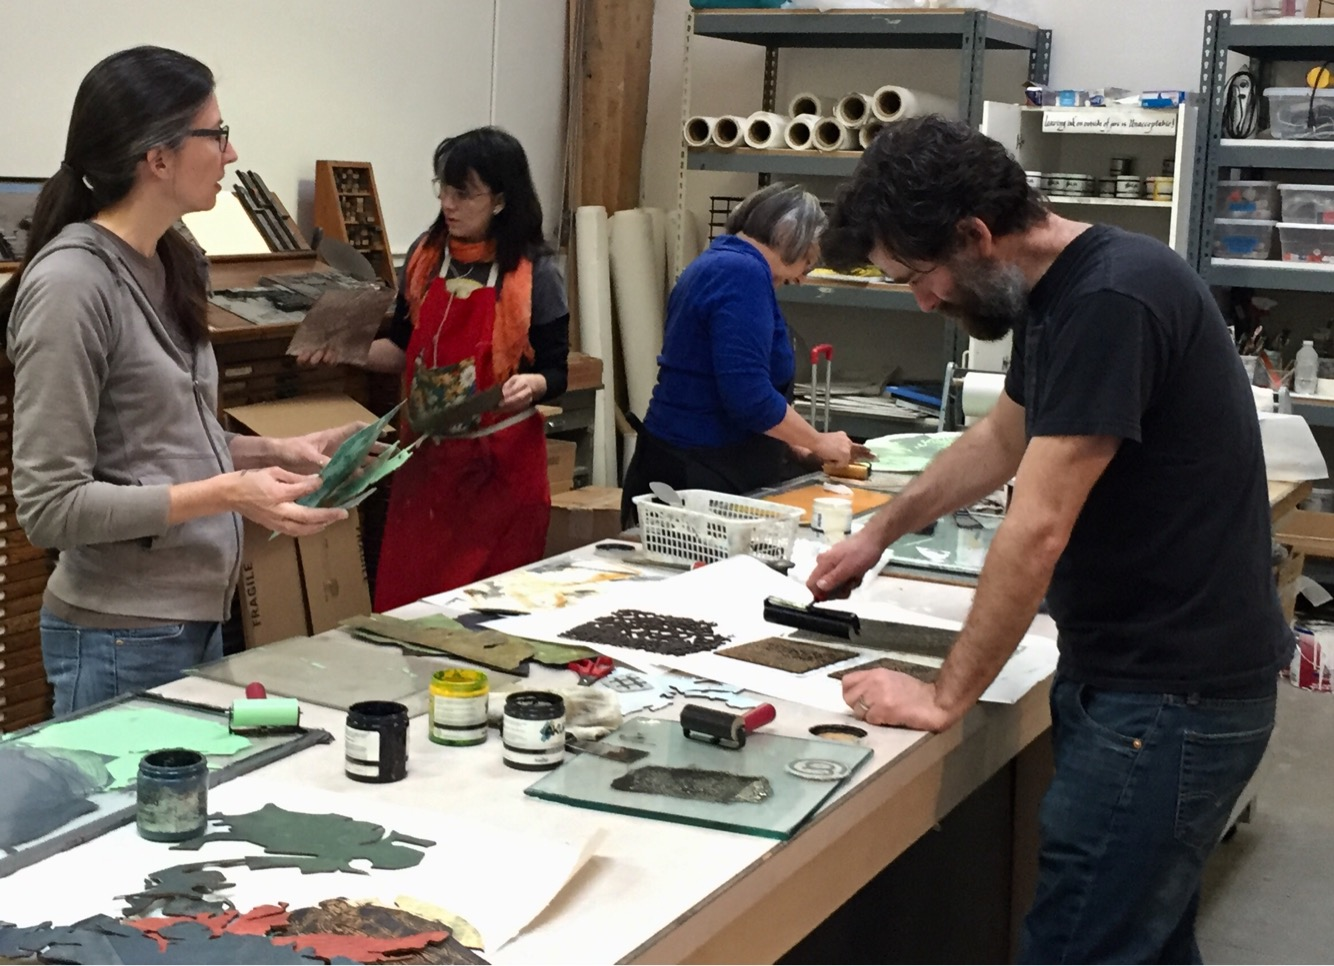 Worob printing during a workshop at the Bend Art Center. Image courtesy of the artist.